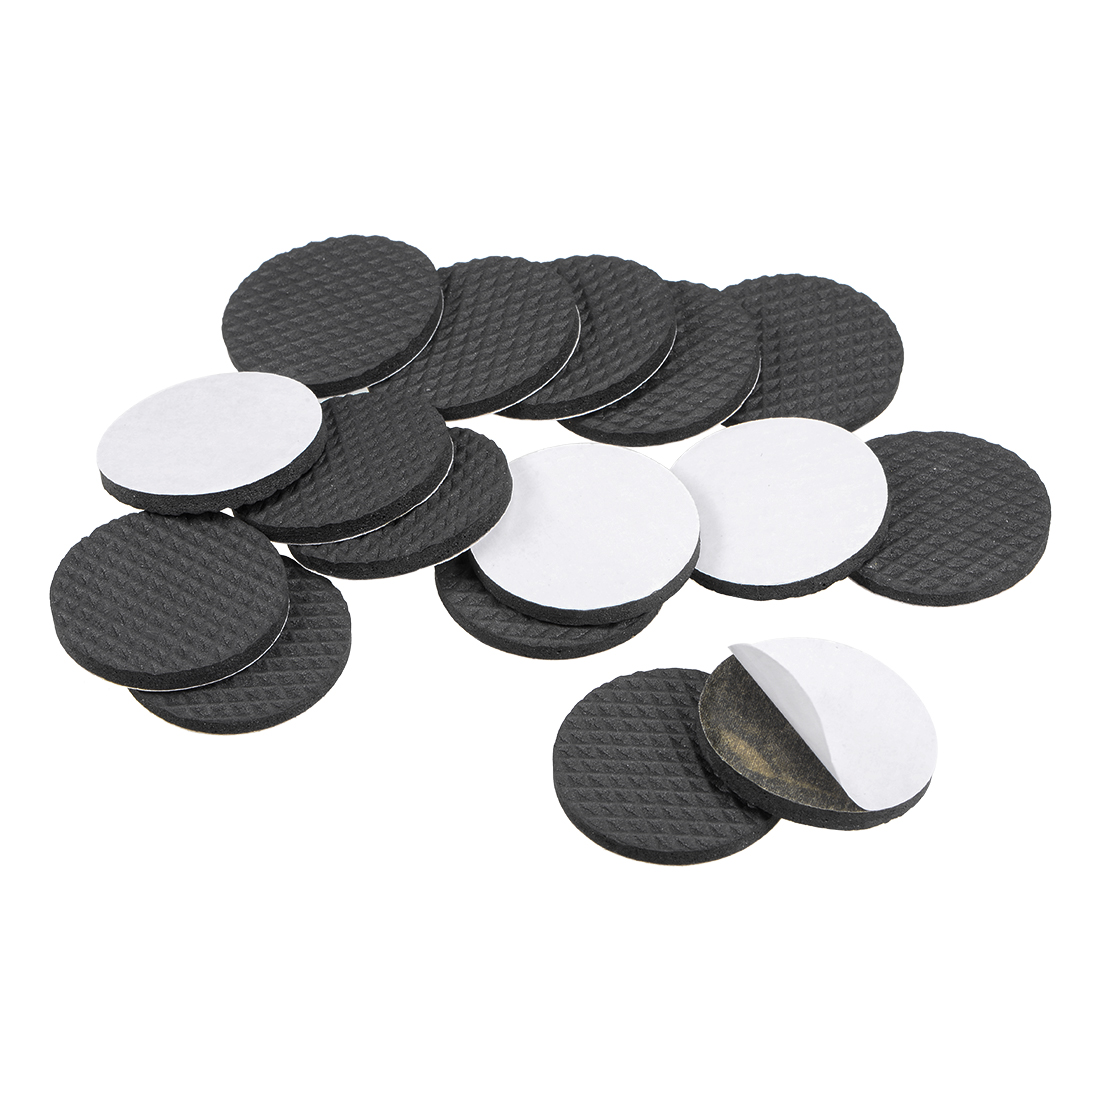 Furniture Pads Adhesive Rubber Pads 38mm Dia 4mm Thick Round Black 28Pcs